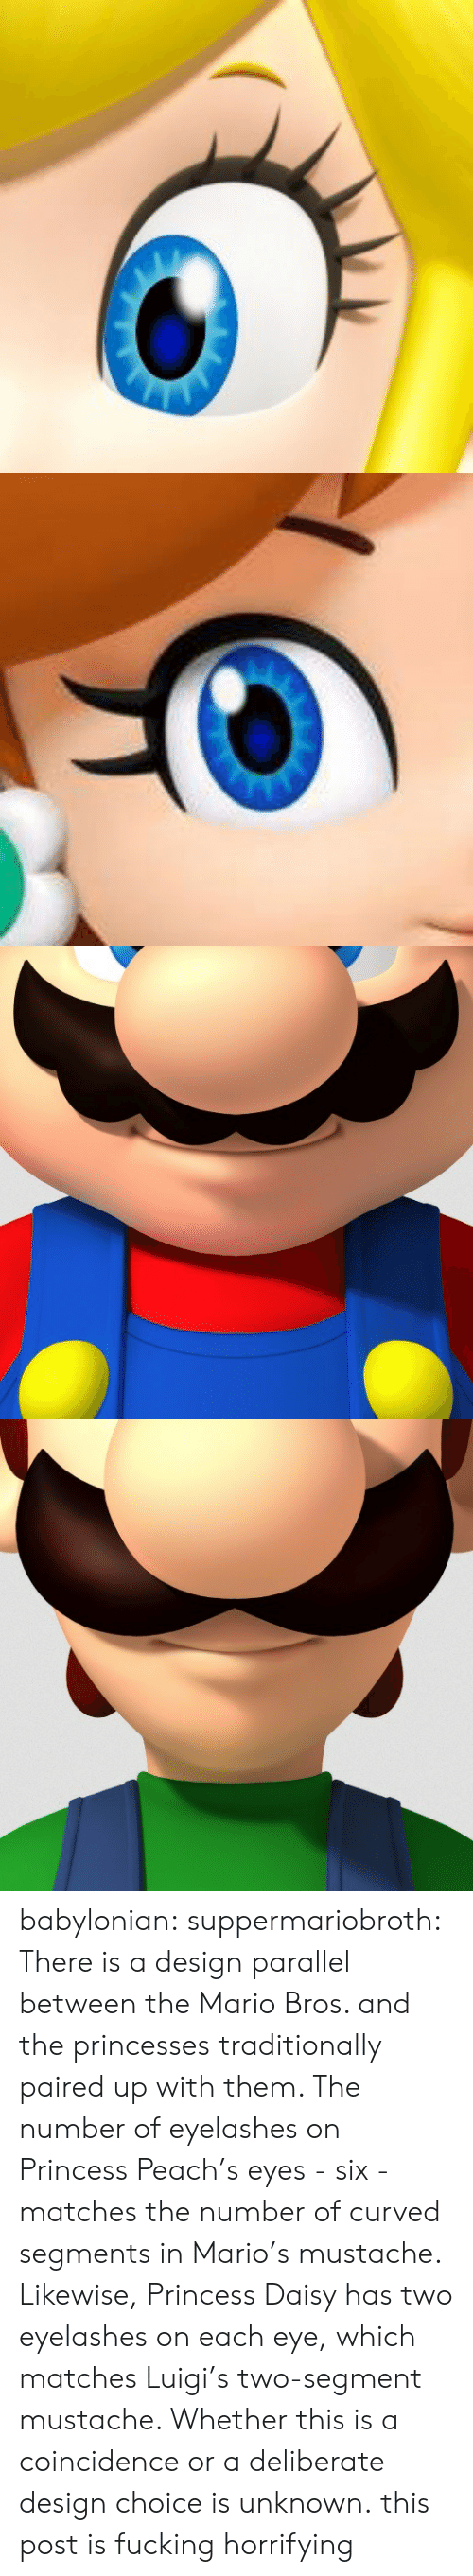 Fucking, Tumblr, and Mario: babylonian: suppermariobroth: There is a design parallel between the Mario Bros. and the princesses traditionally paired up with them. The number of eyelashes on Princess Peach's eyes - six - matches the number of curved segments in Mario's mustache. Likewise, Princess Daisy has two eyelashes on each eye, which matches Luigi's two-segment mustache. Whether this is a coincidence or a deliberate design choice is unknown. this post is fucking horrifying